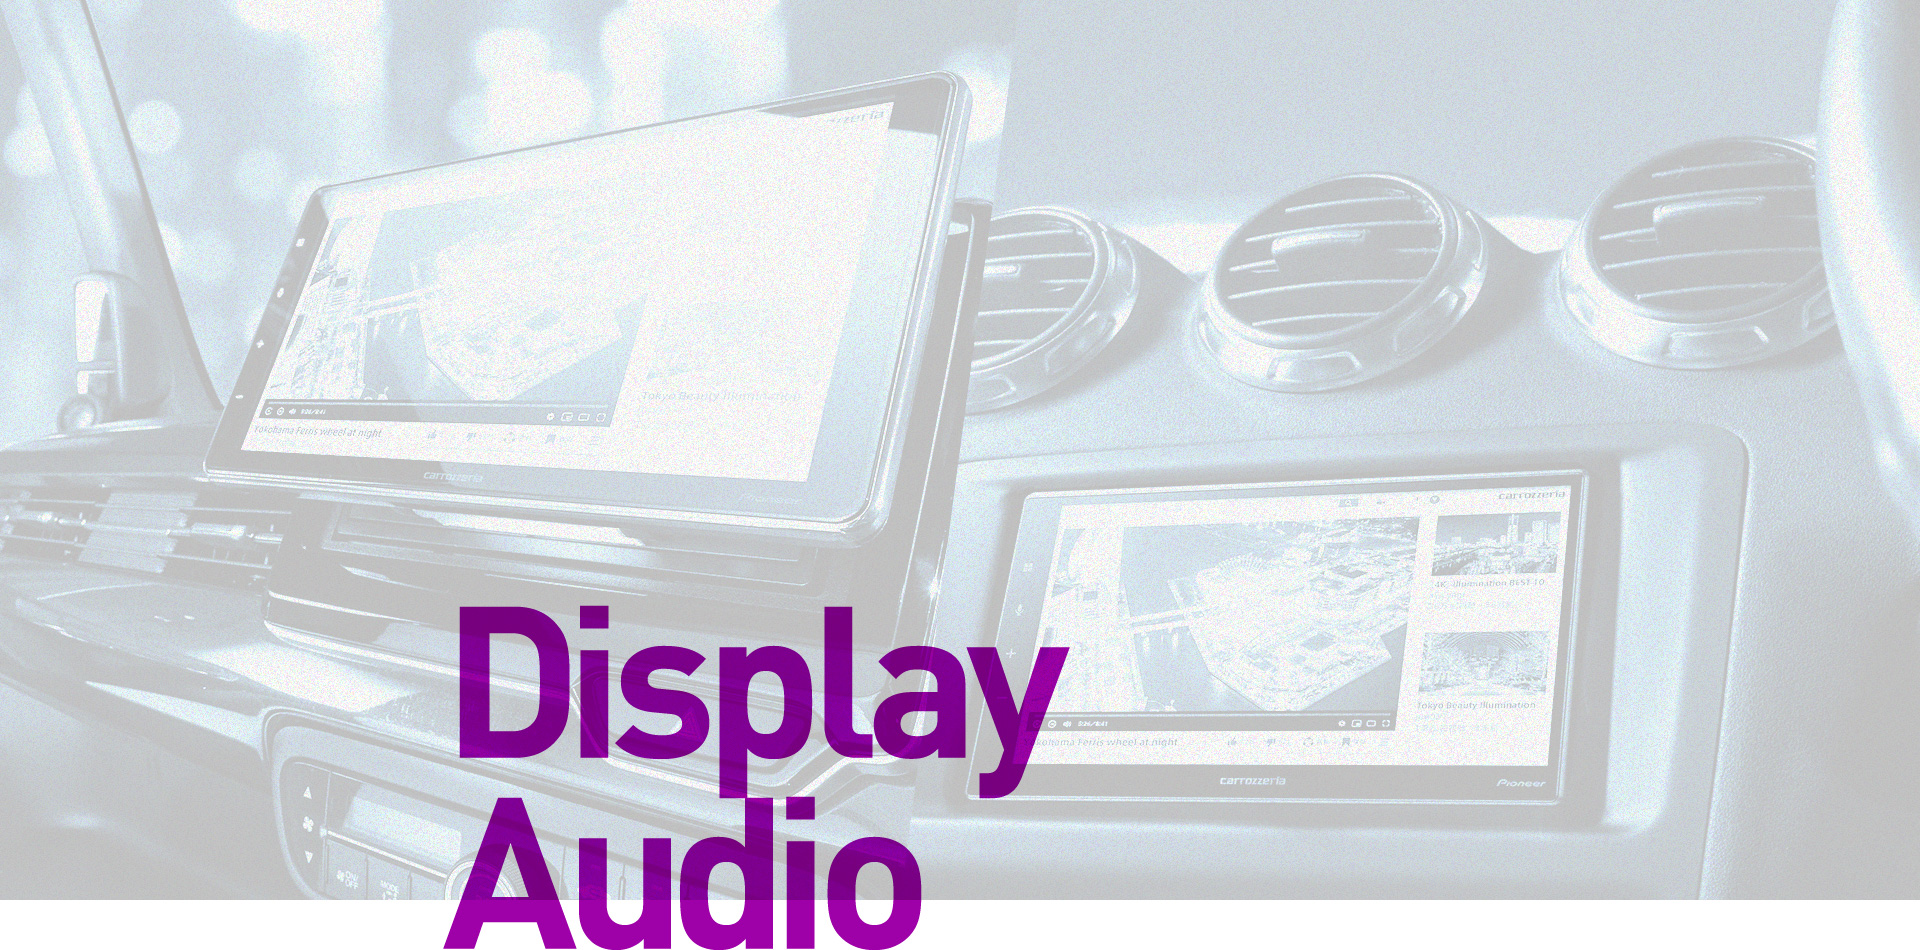 Display Audio